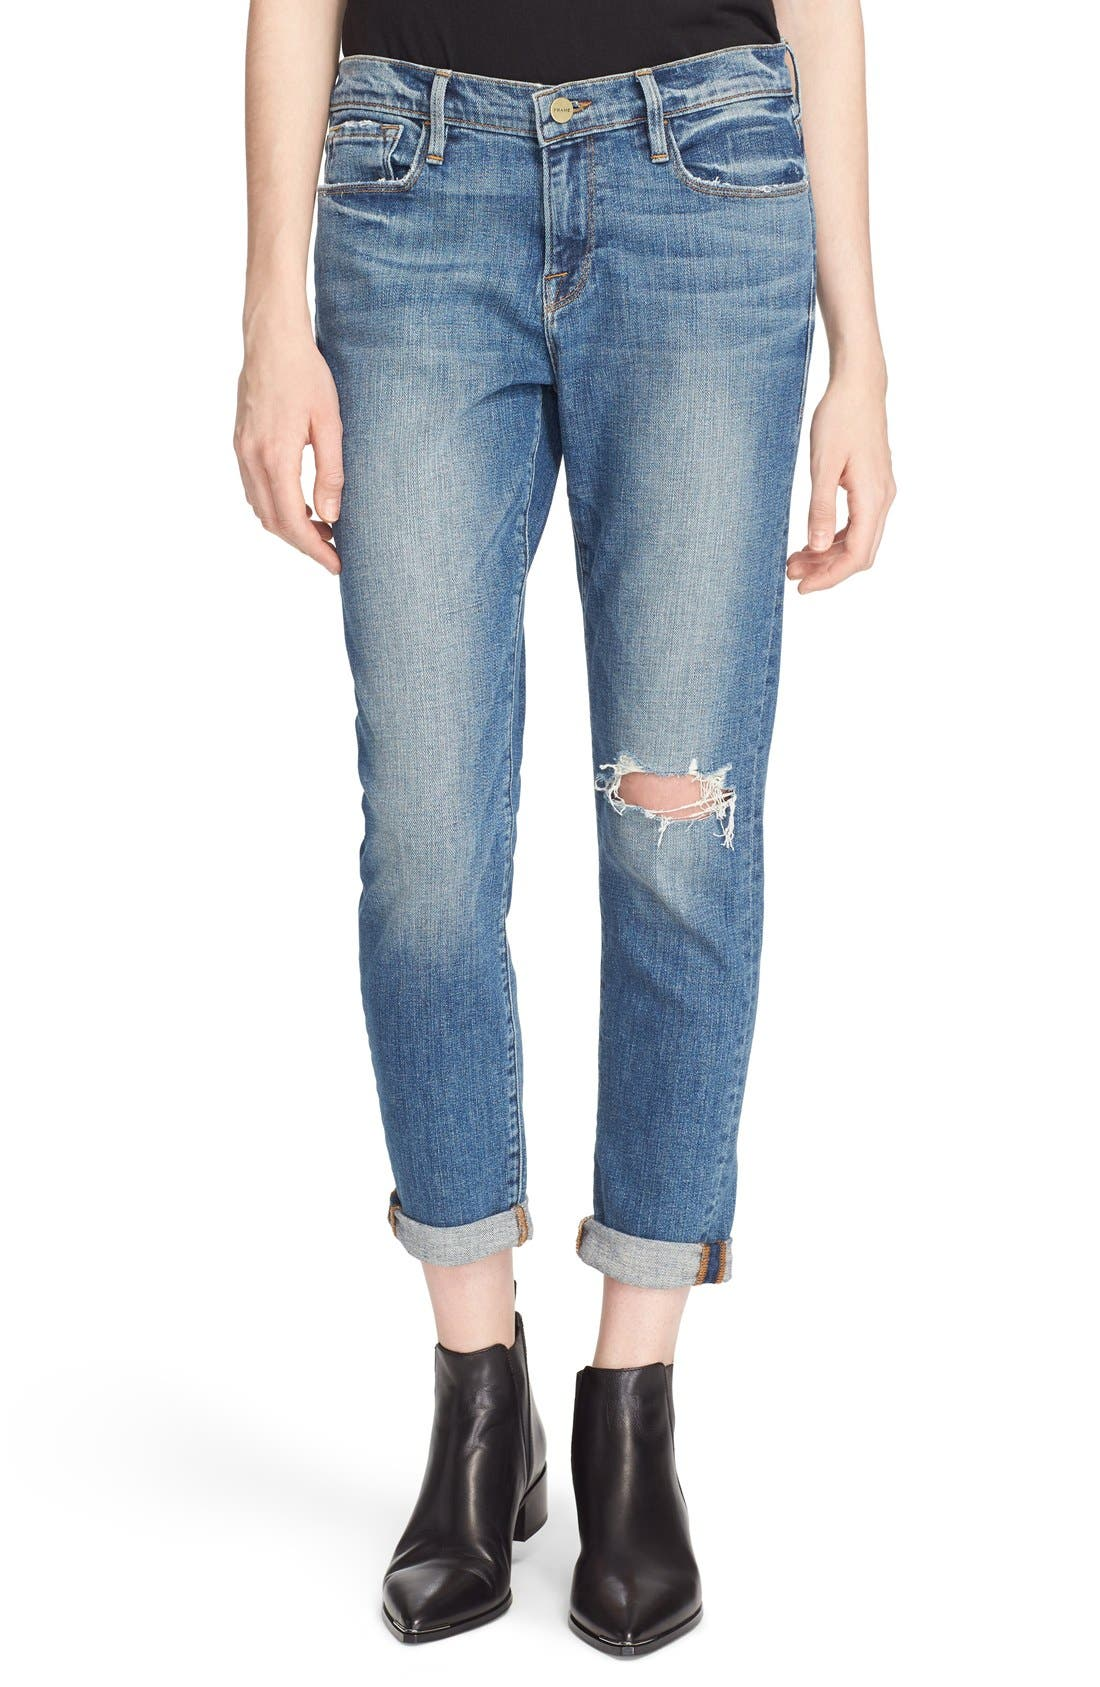 Alternate Image 1 Selected - FRAME Le Garçon Boyfriend Jeans (Copper)